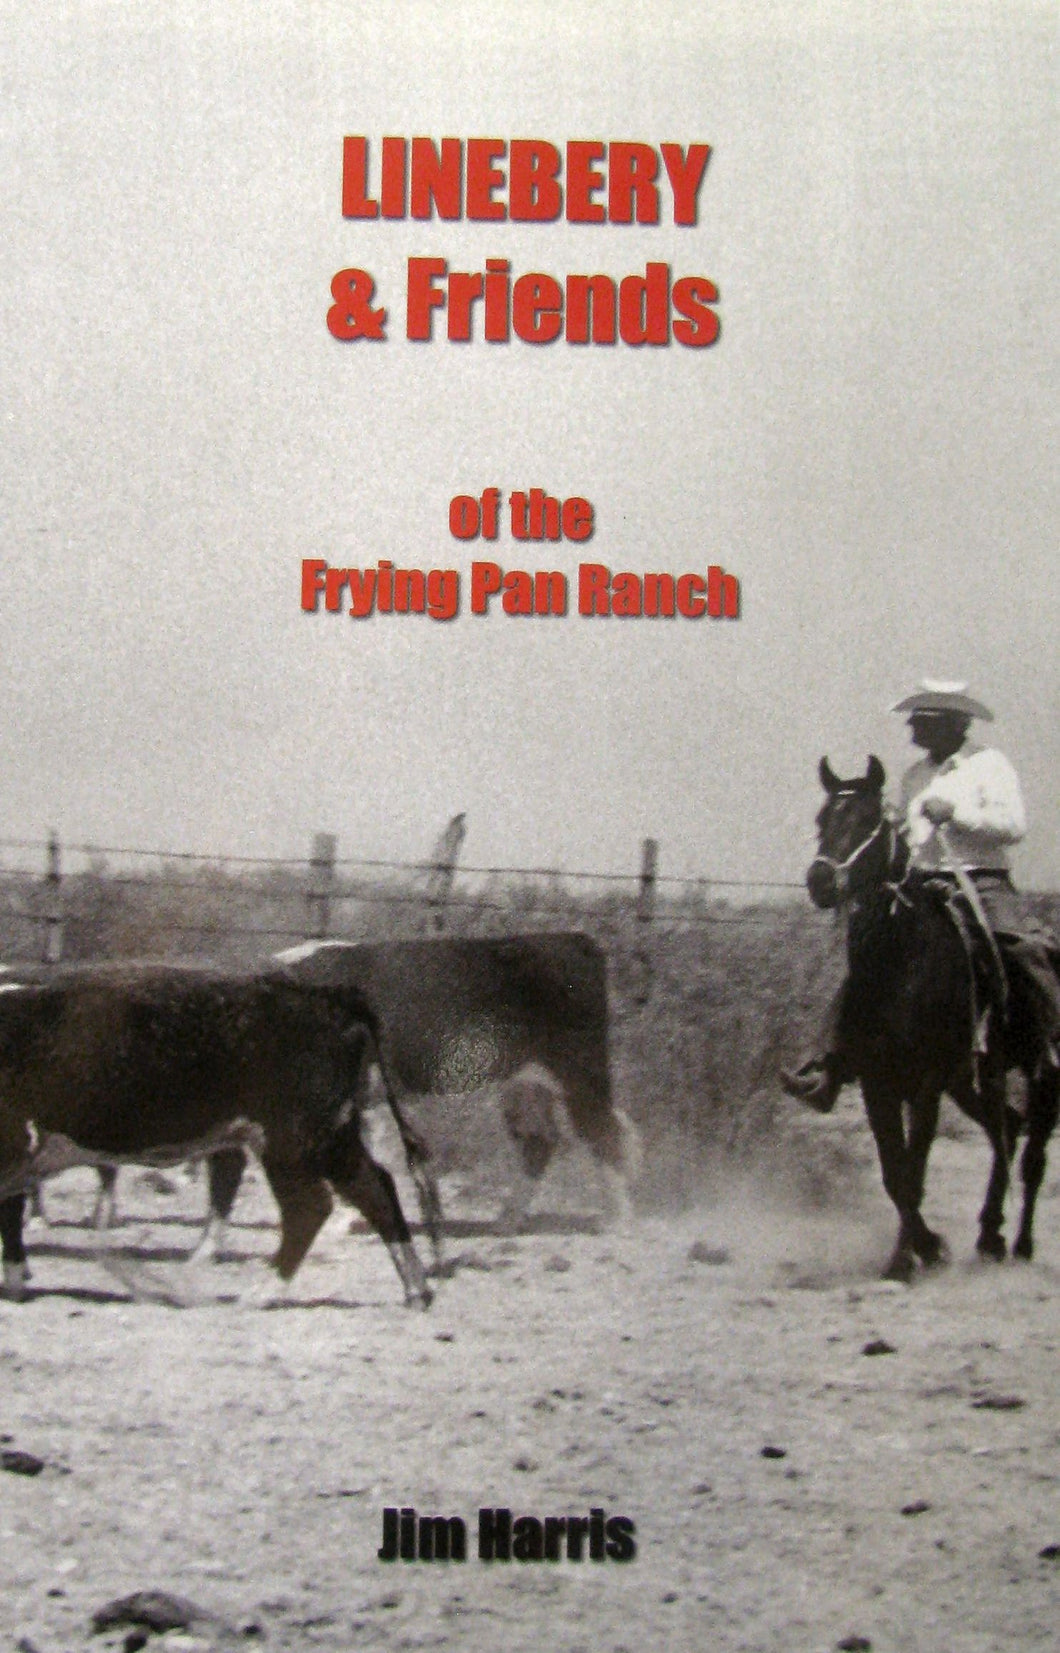 Linebery & Friends of the Frying Pan Ranch